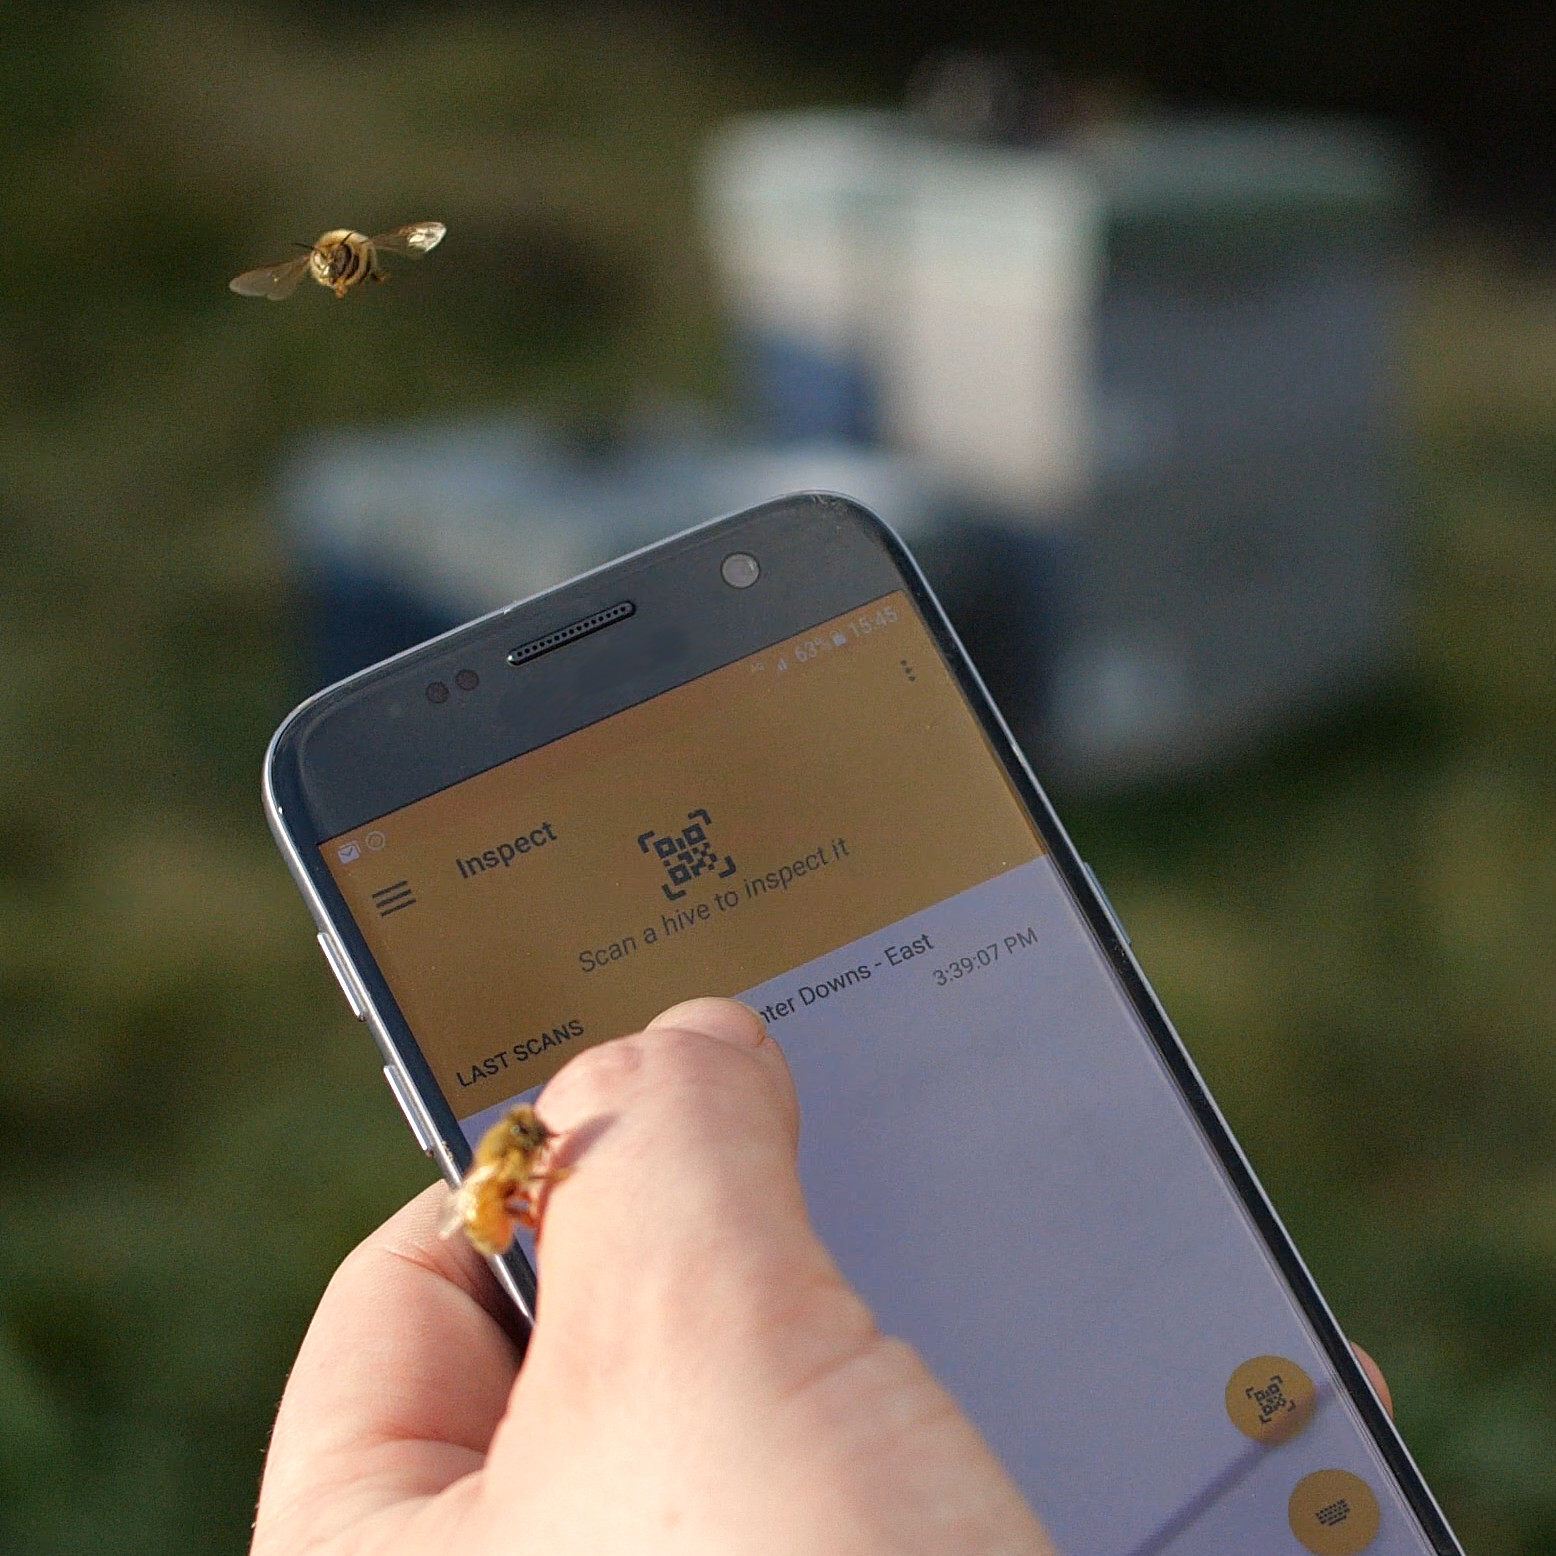 BeeApp in the field while some friendly bees check out what all the buzz is about